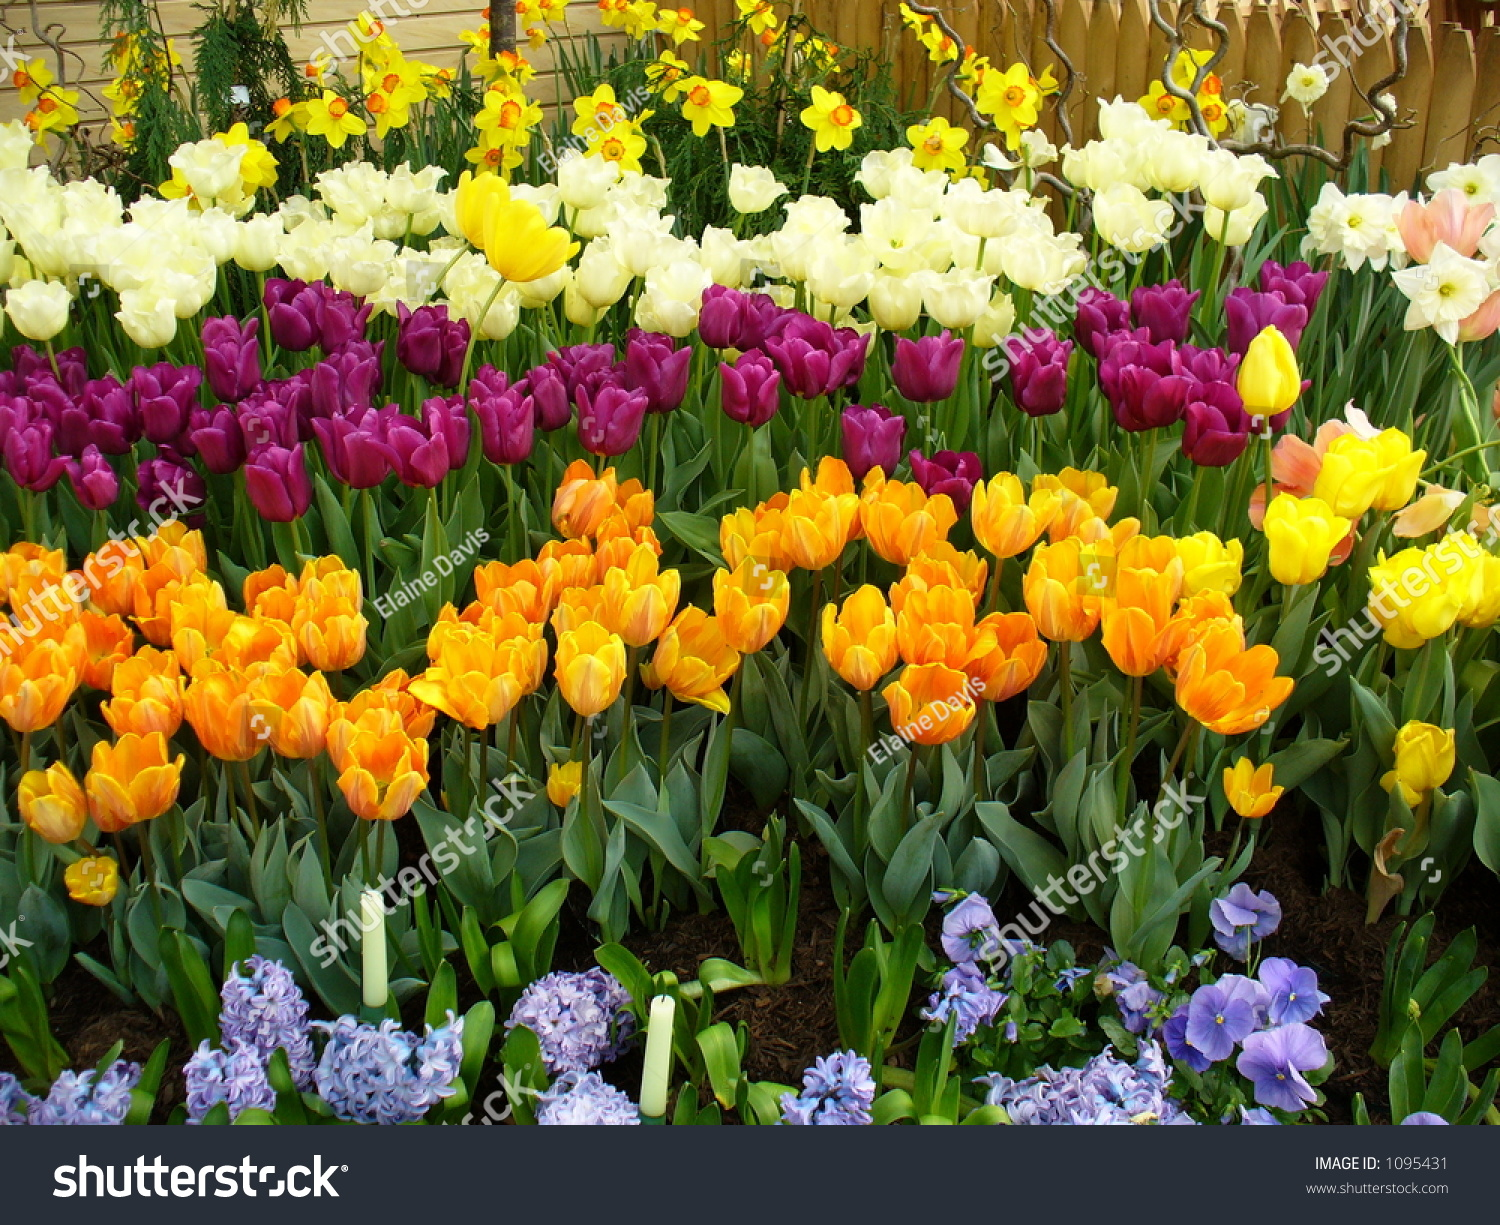 All Types Flowers Stock Photo 1095431 - Shutterstock